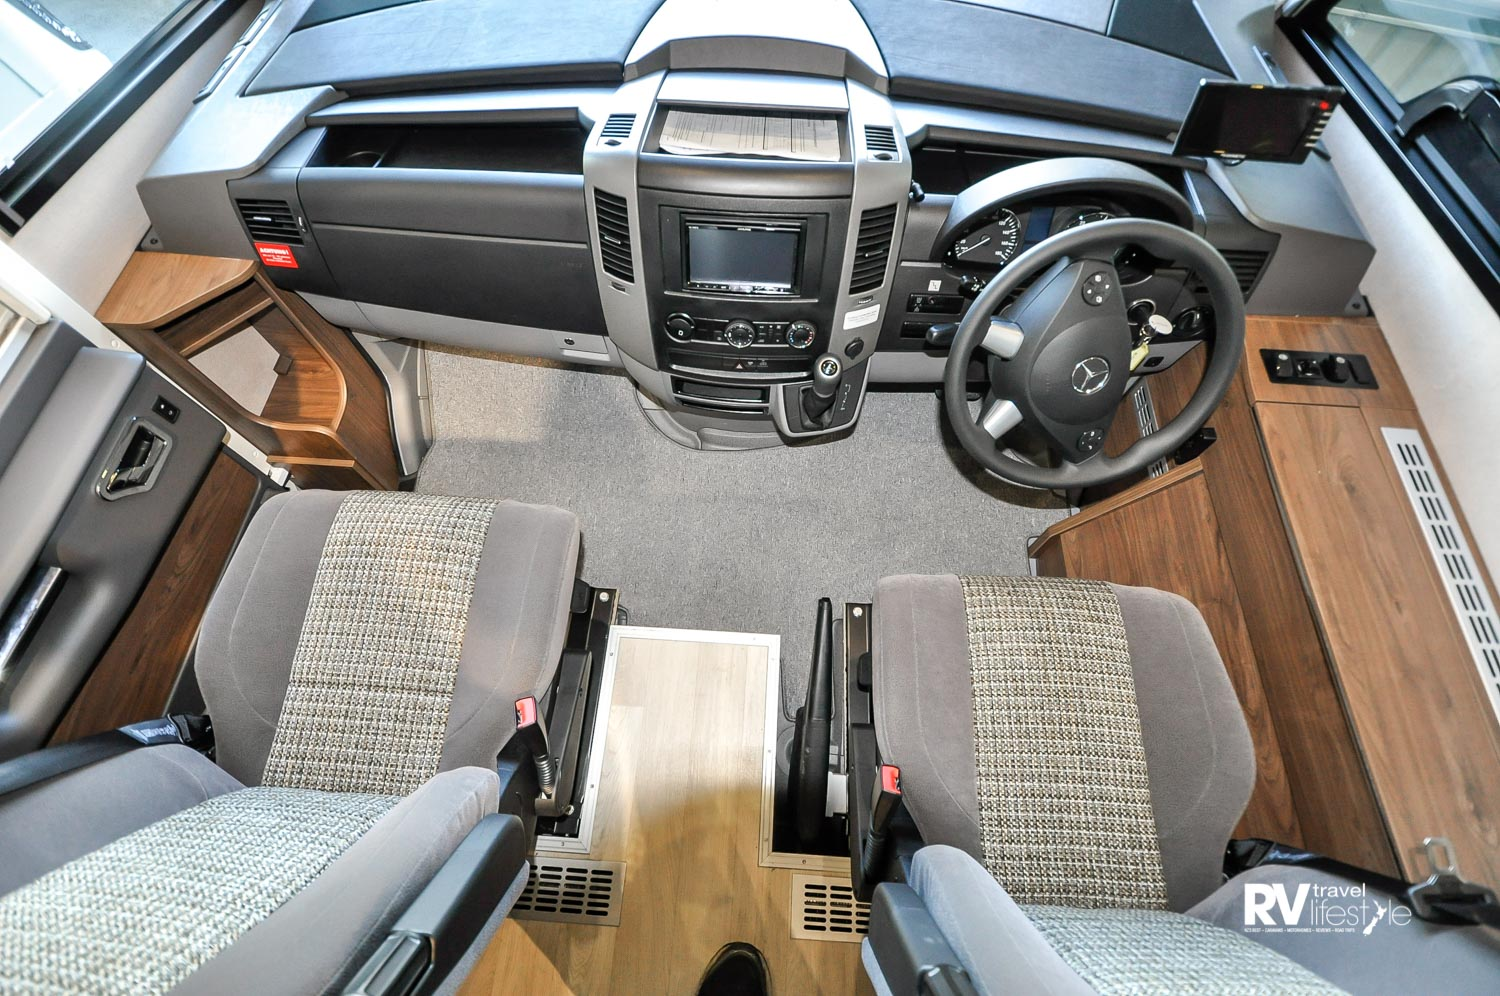 The Mercedes Benz Eurosprinter 519 cab is well equipped. Lots of storage for driver and passenger, all the technology Mercedes has to offer, and the seats swivel to the house area for relaxation